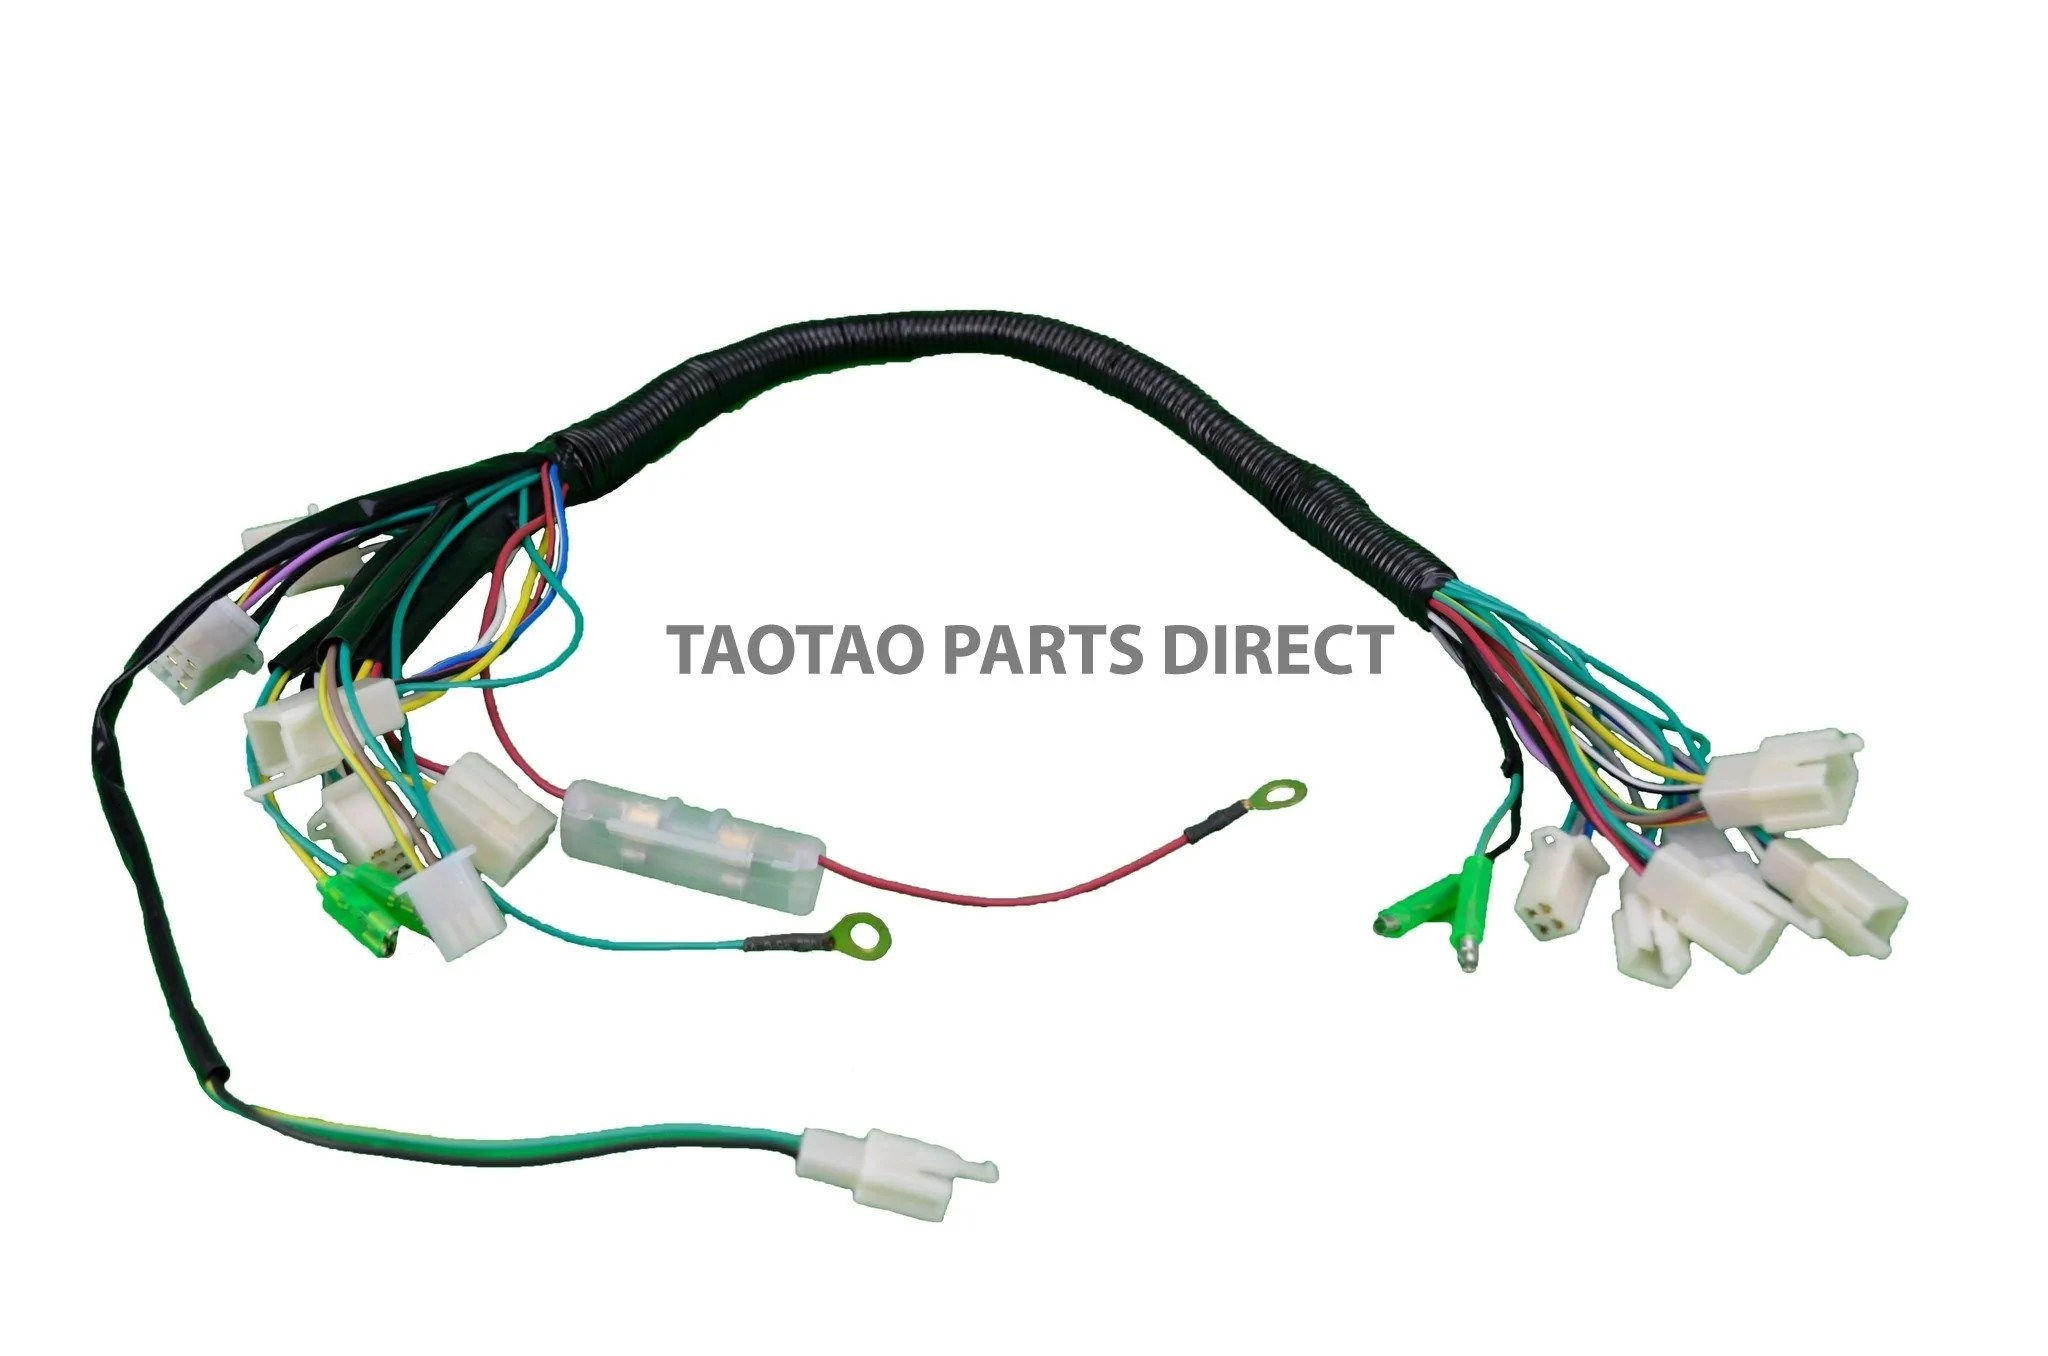 ata110b wire harness 8 taotaopartsdirect com [ 2048 x 1356 Pixel ]